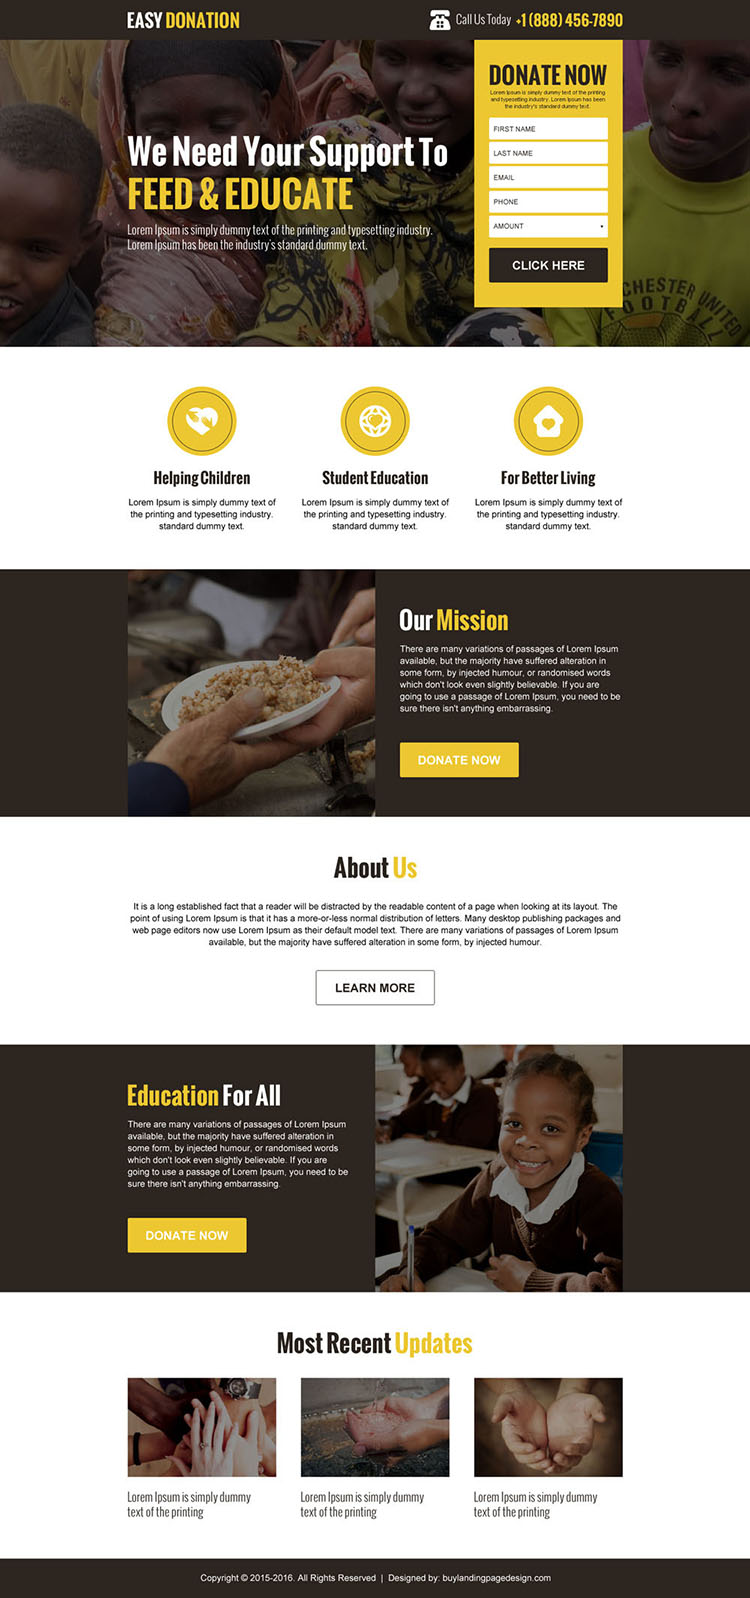 easy donation landing page design template